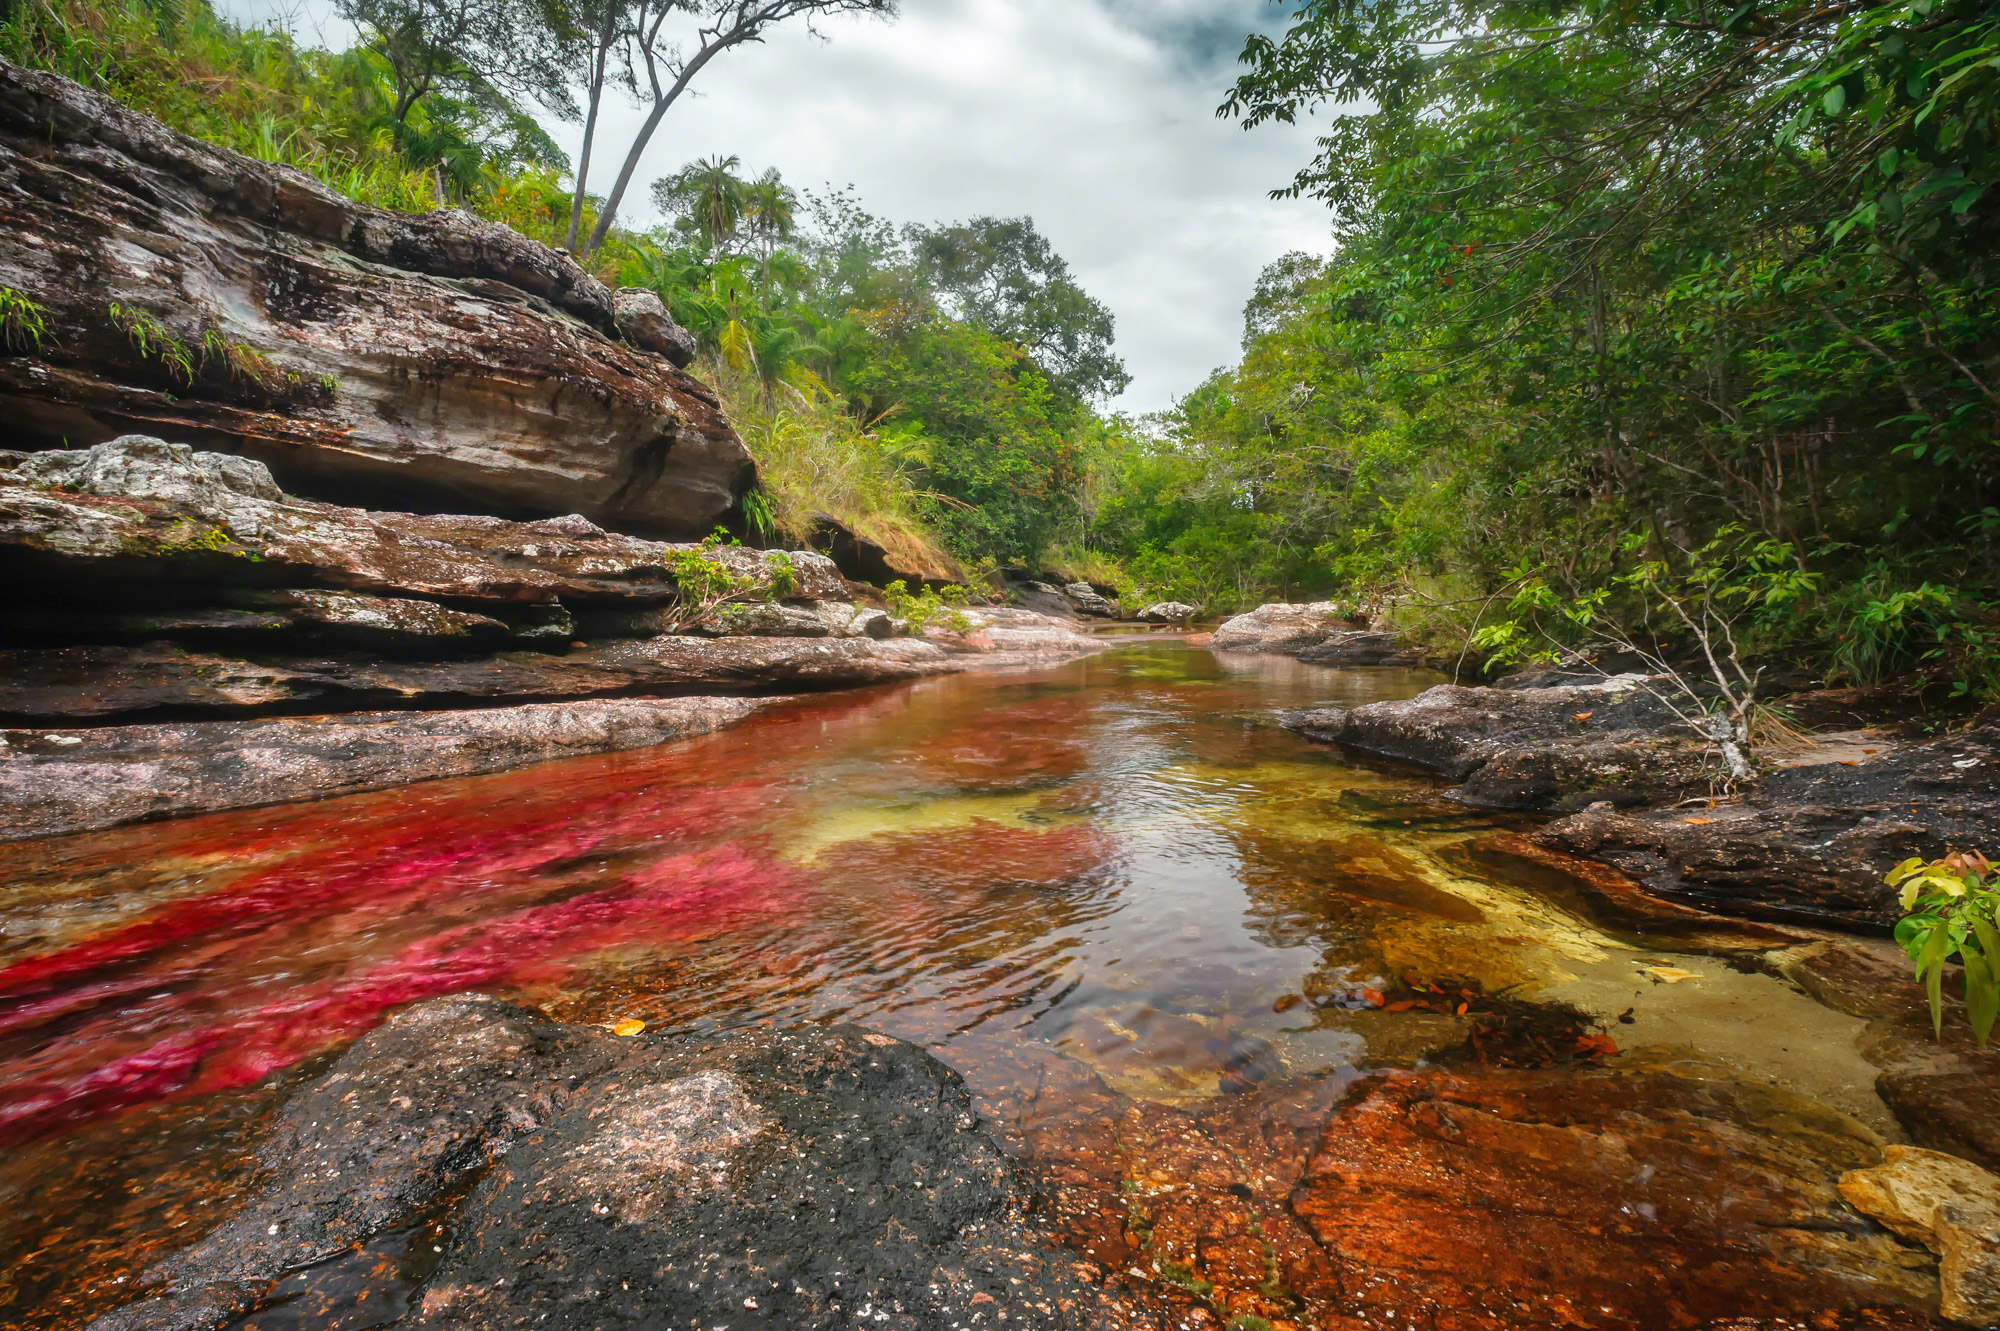 Ca o cristales images frompo - Cristales de colores ...